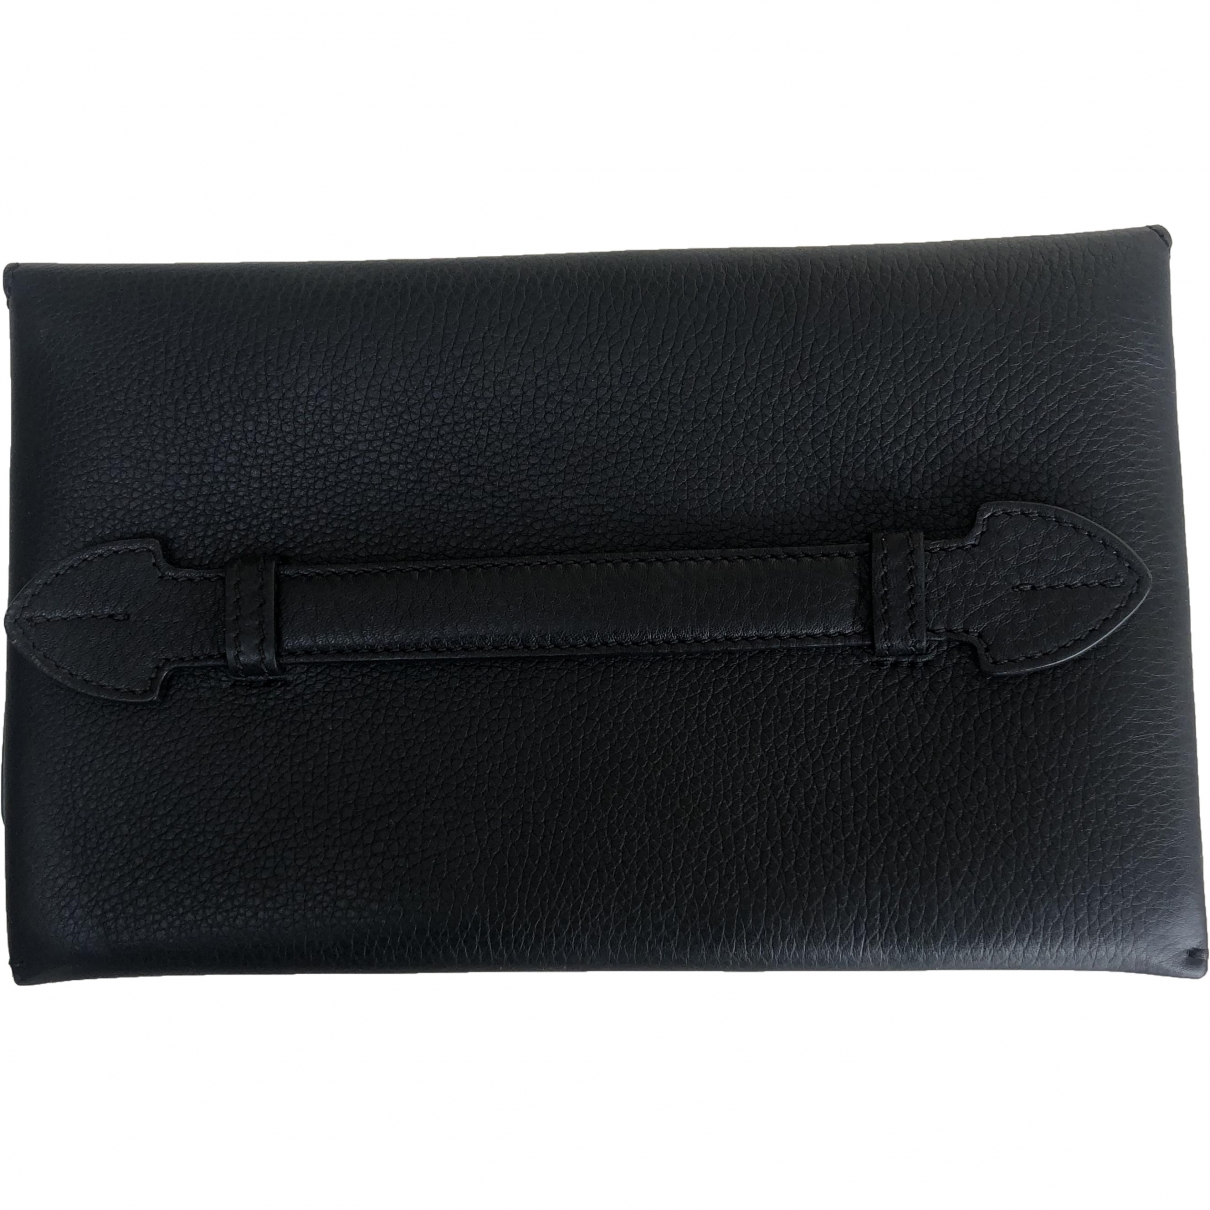 Burberry \N Black Leather Clutch bag for Women \N